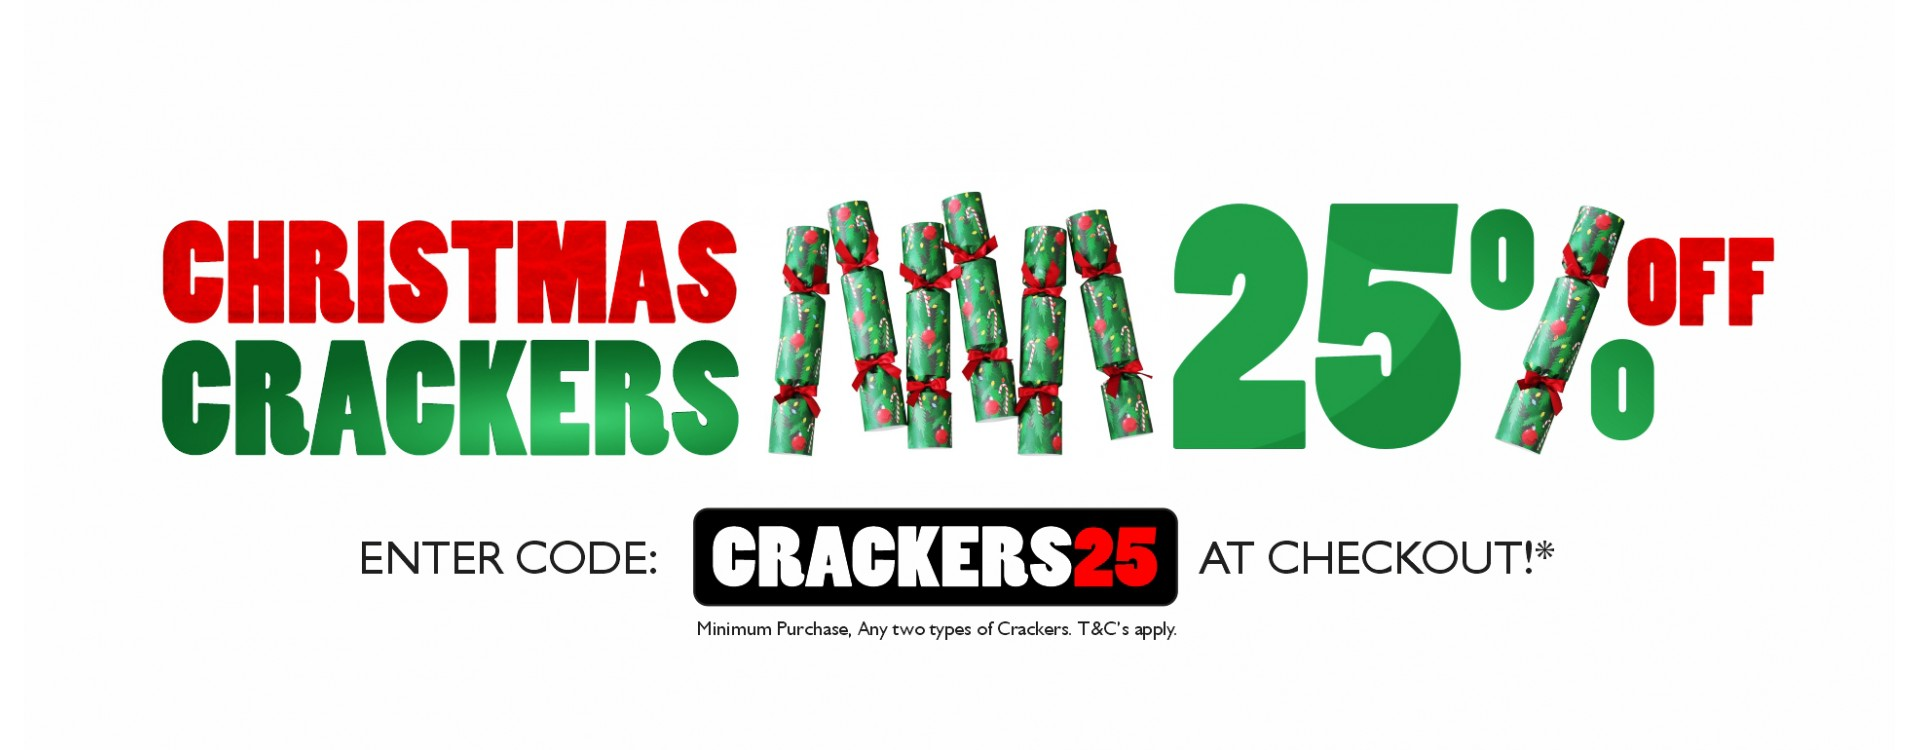 Christmas Crackers Offer